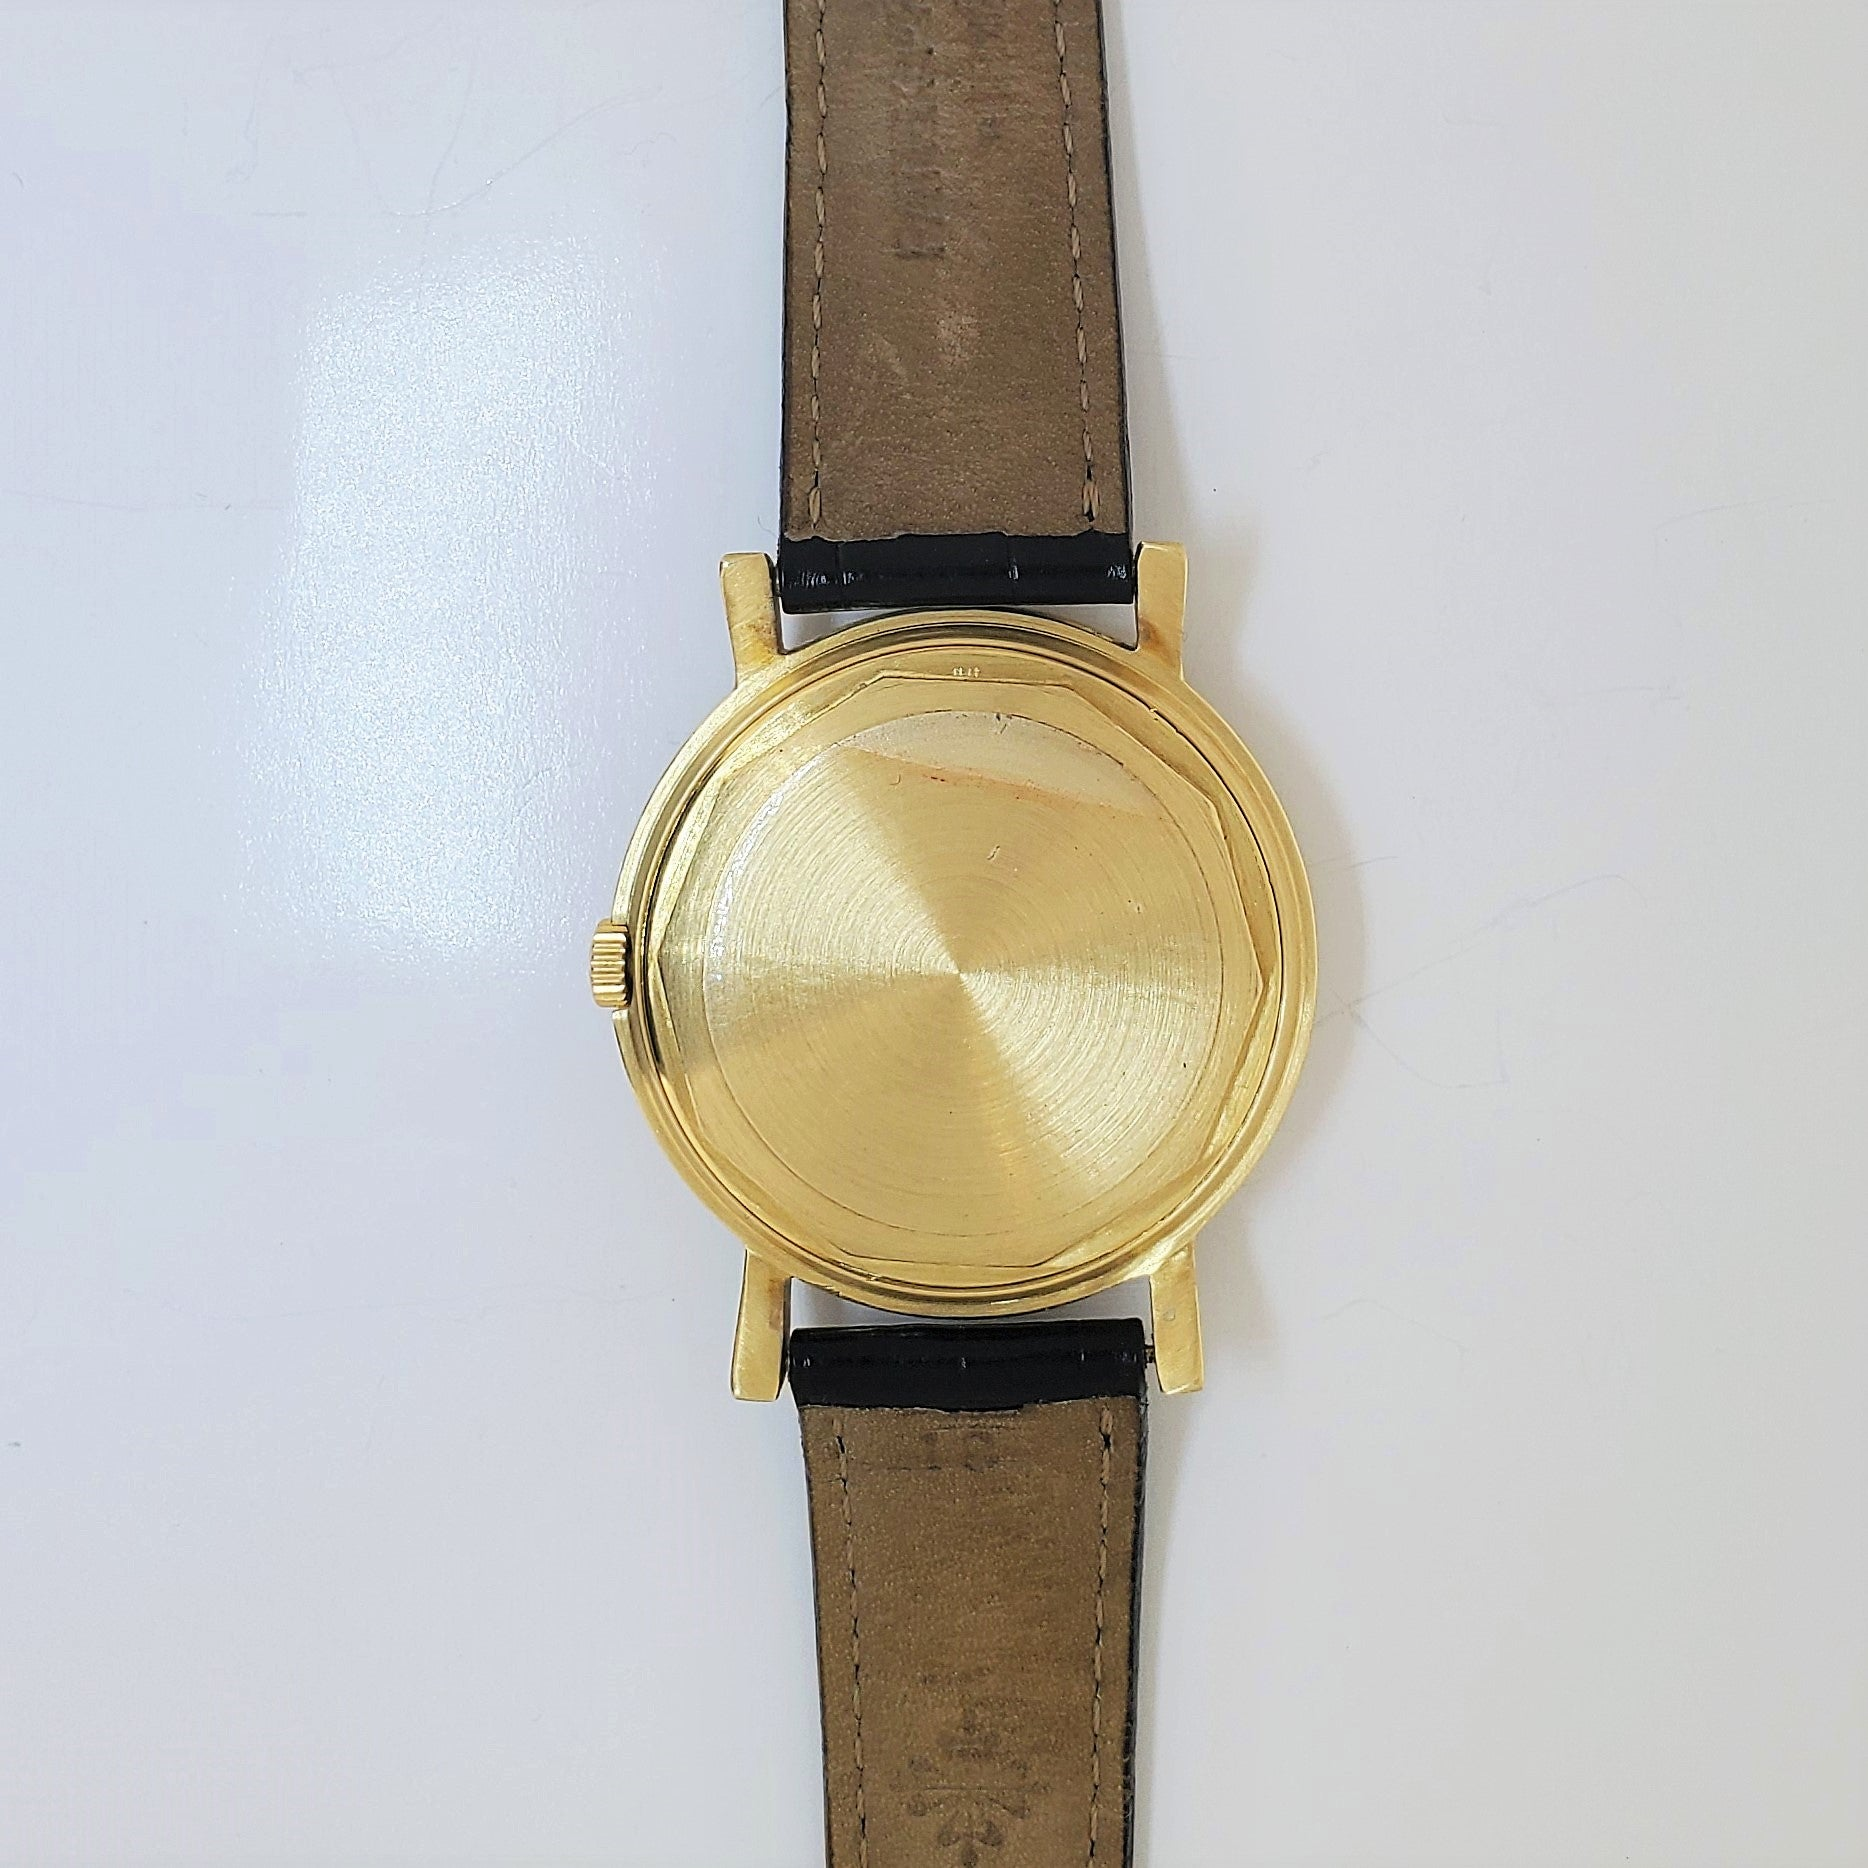 Patek Philippe 3541J Automatic Calatrava Watch Circa 1968